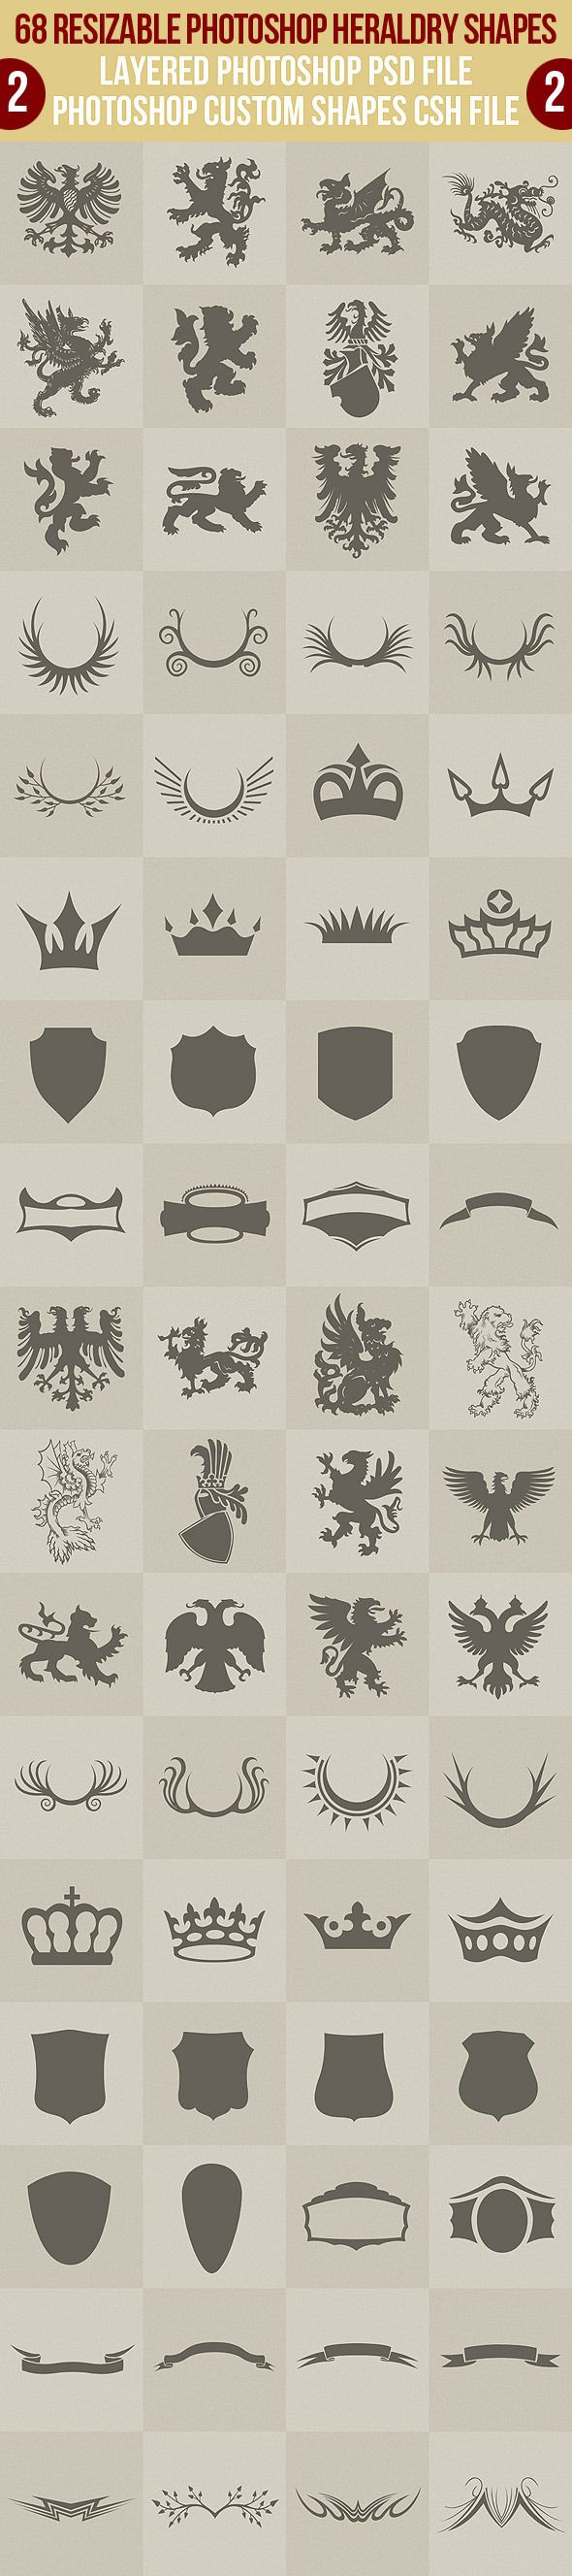 68 Photoshop Heraldry Shapes 2 - Symbols Shapes